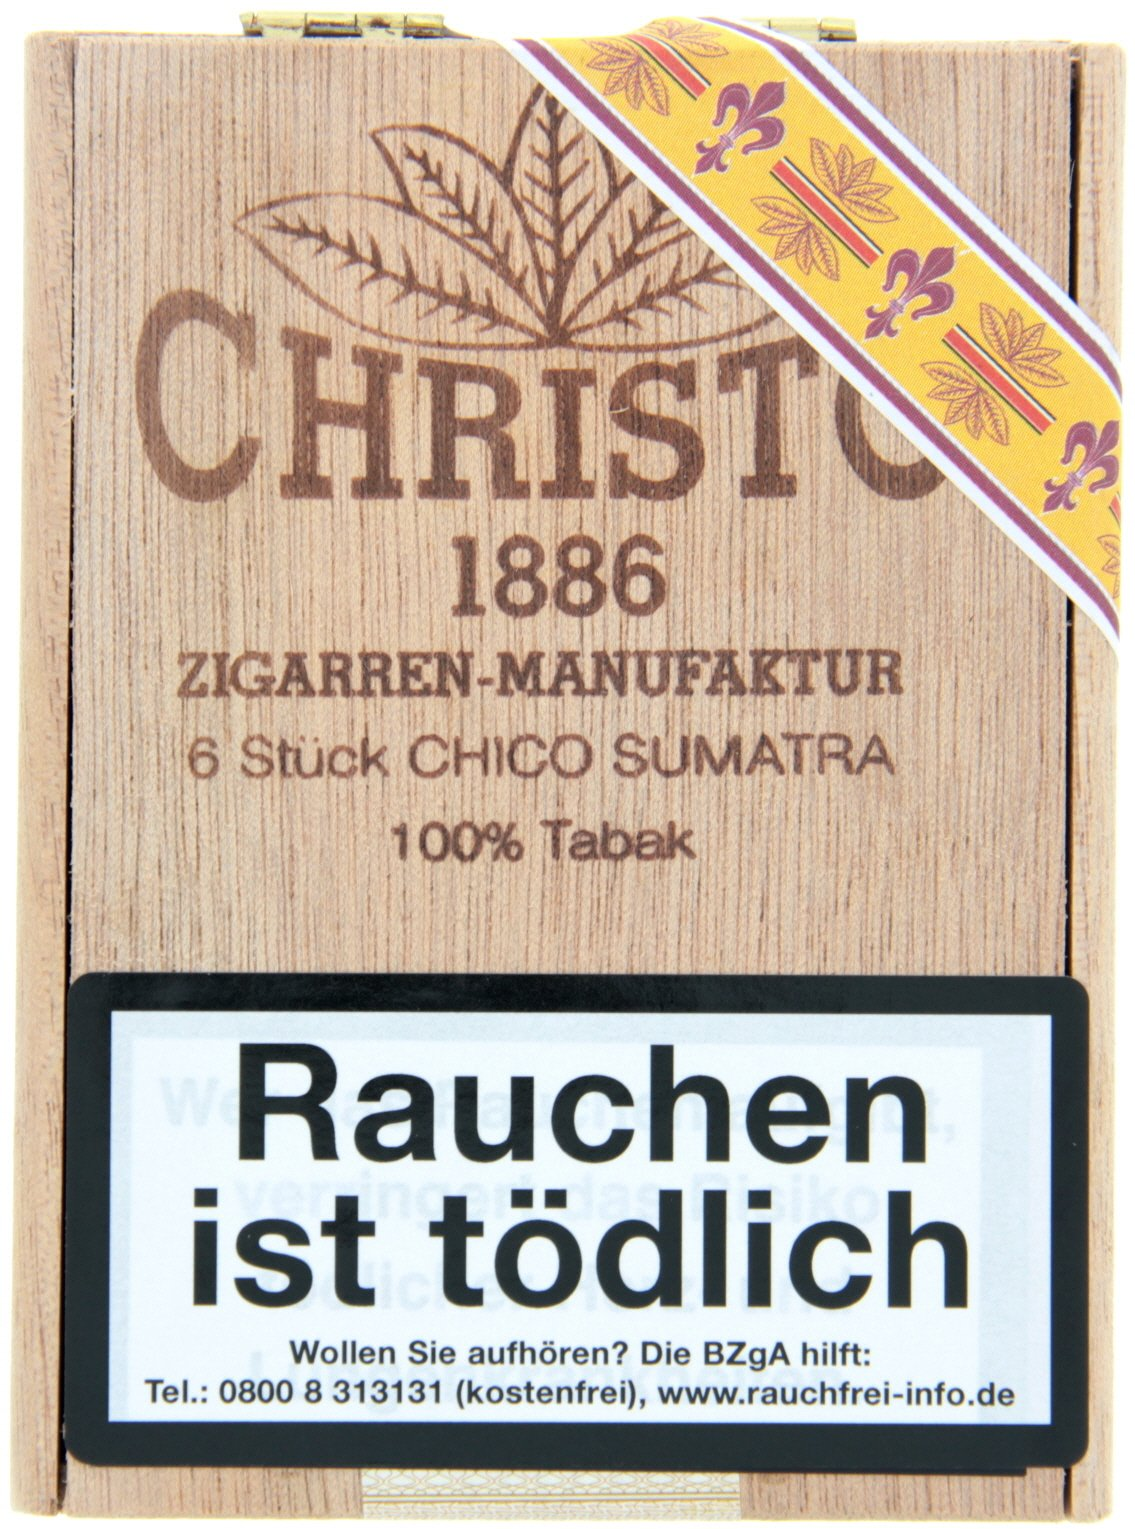 Christo 1886 Zigarrenmanufaktur Cigarillos Chico Sumatra (6er)